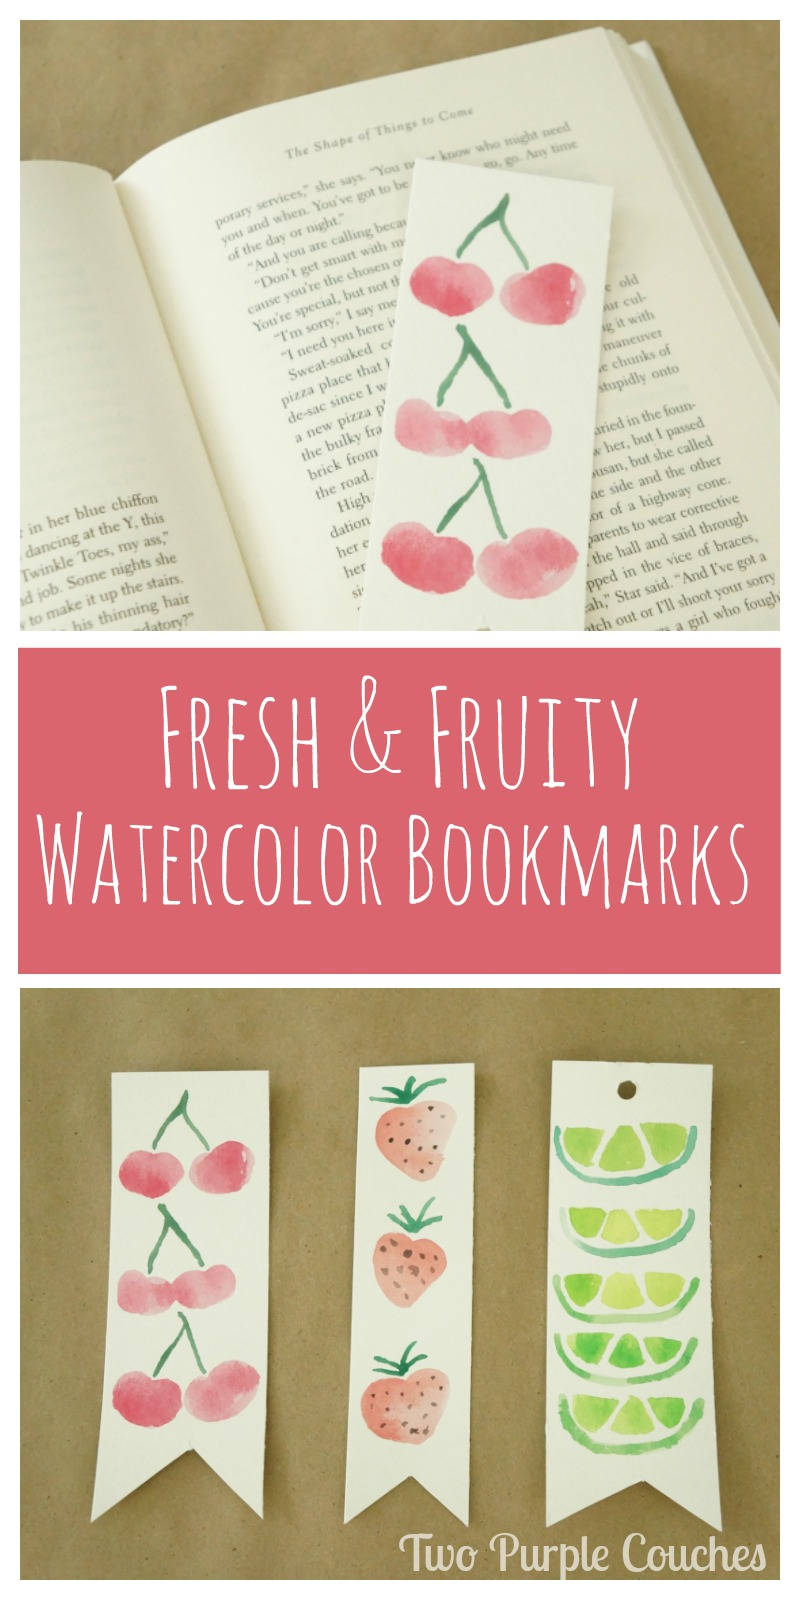 Watercolor bookmarks - Make Your Own Watercolor Bookmarks Featuring Sweet Summer Fruits Designs Like Strawberries Limes Cherries